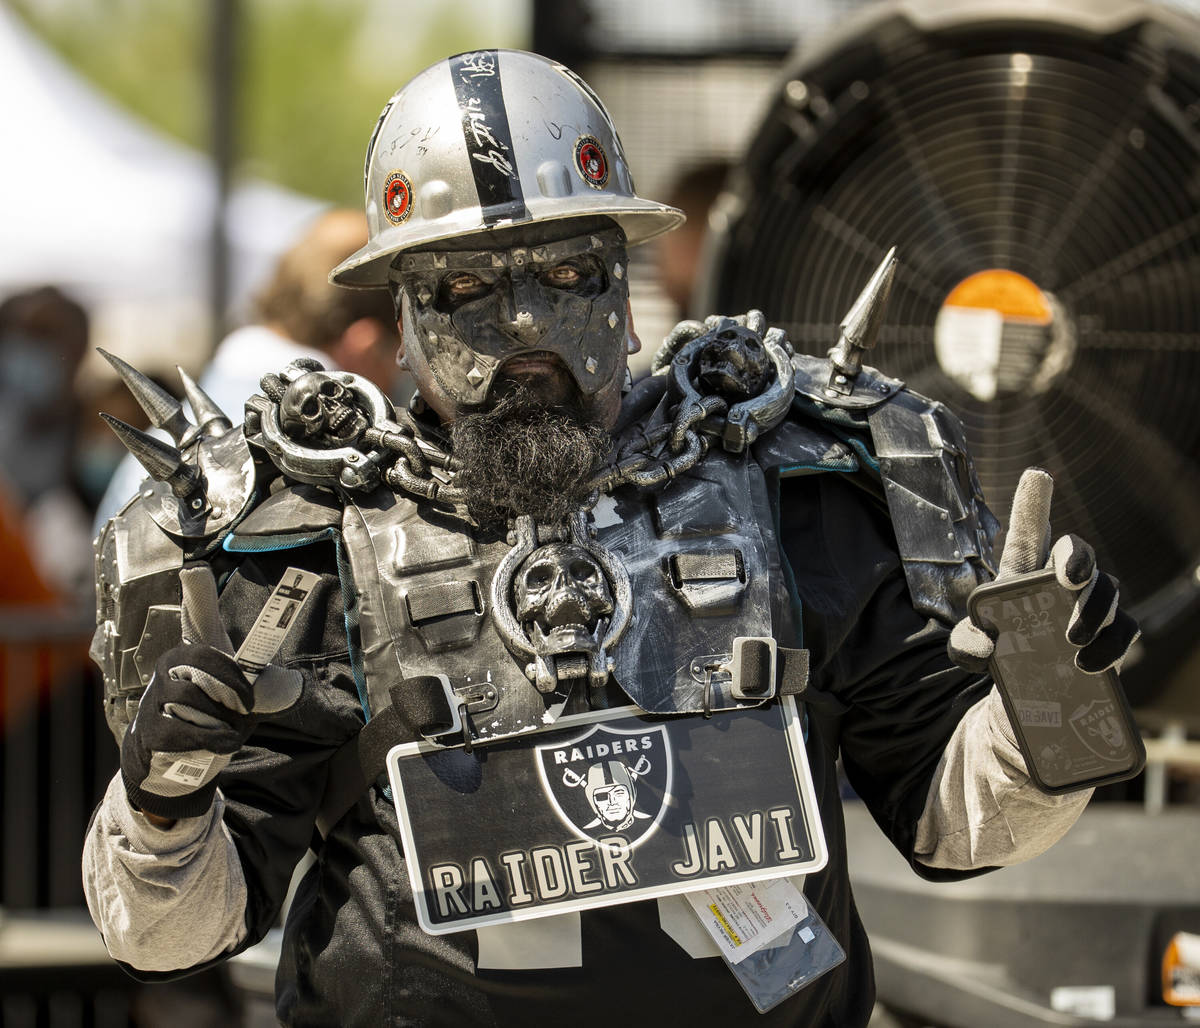 Raider Javi is one of the first fans to enter before the Raiders home opening pre-season NFL fo ...